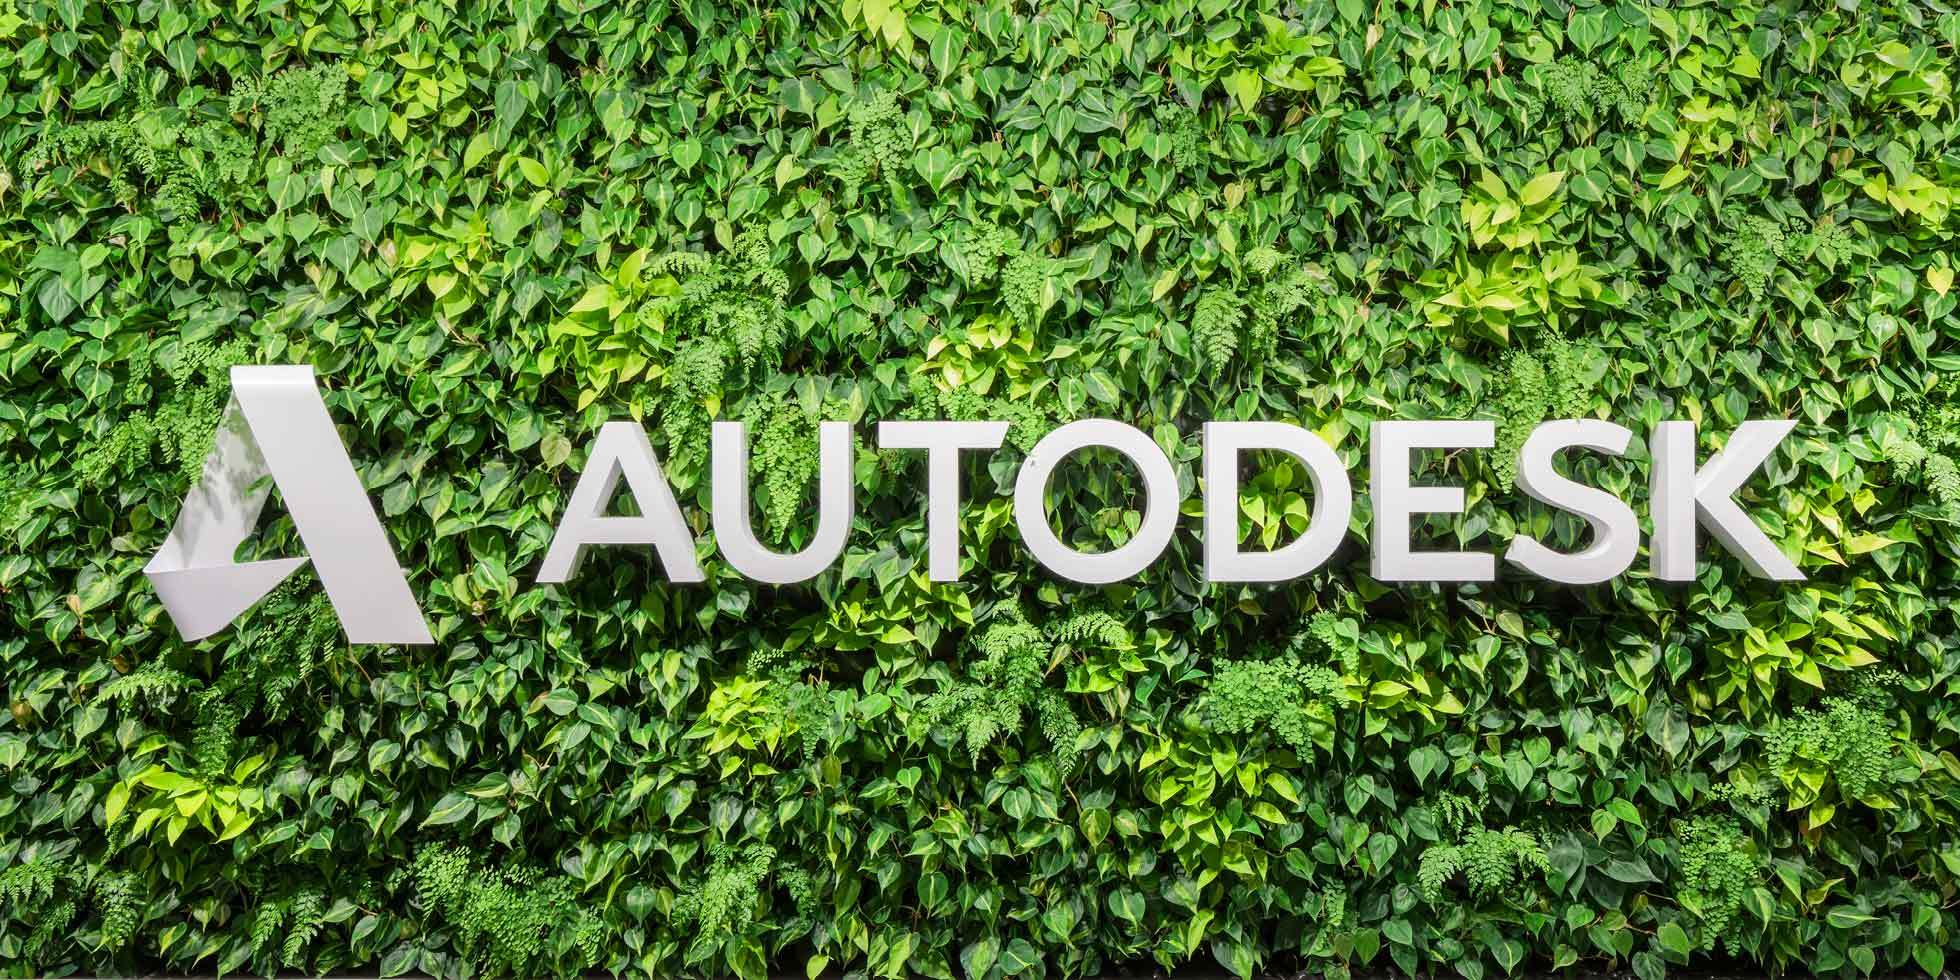 Autodesk Living Wall by Habitat Horticulture - View 2